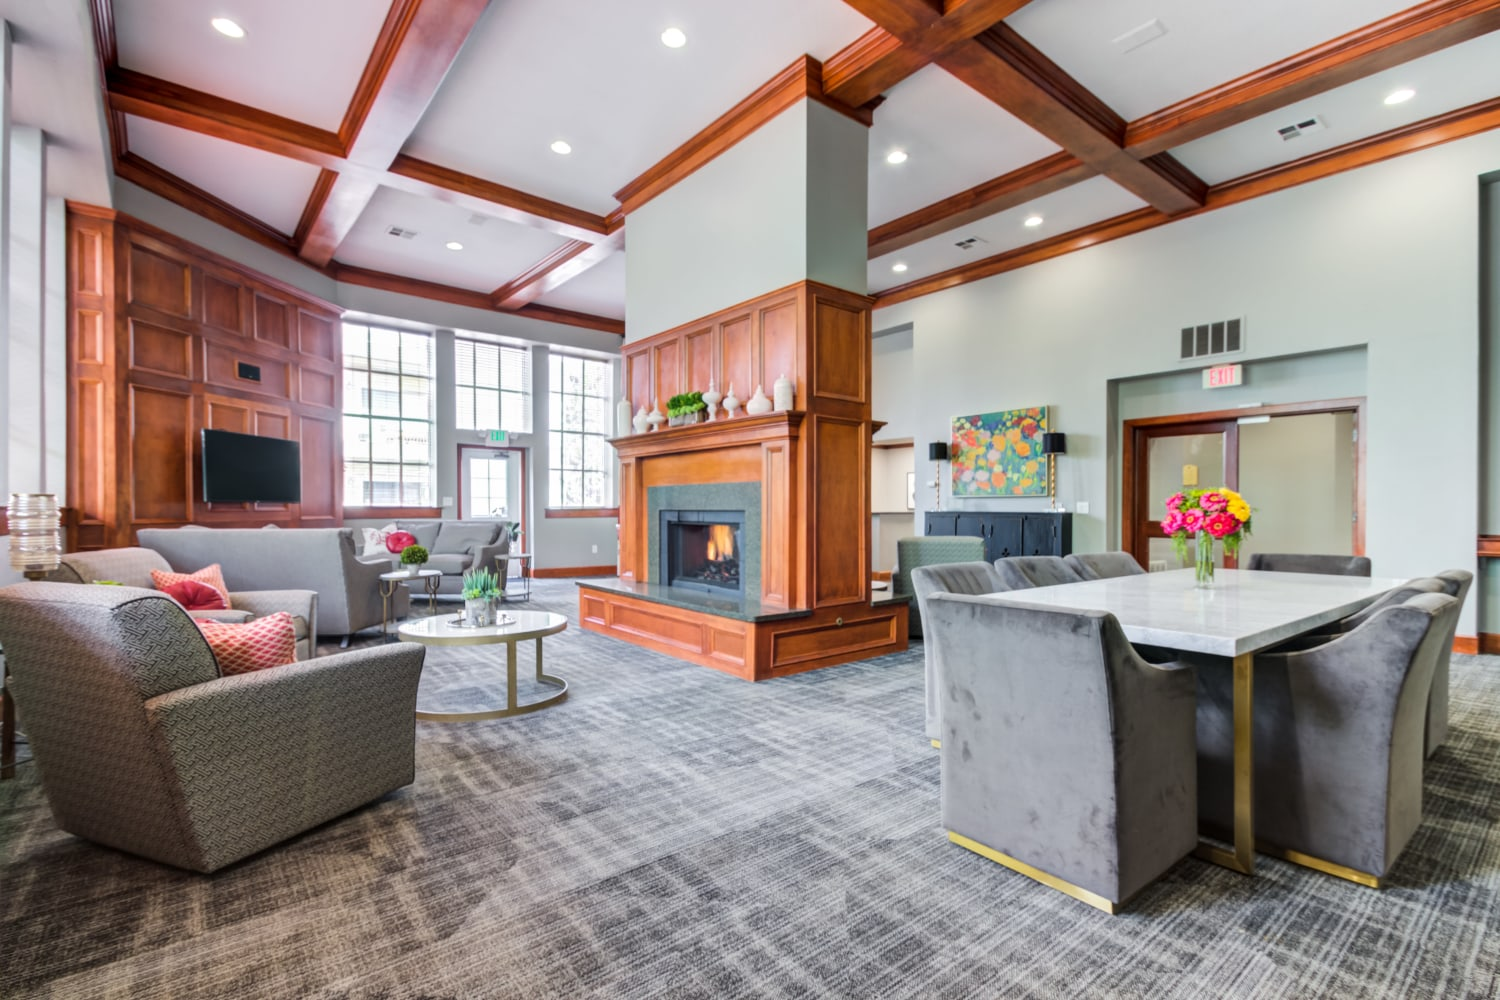 Beautiful high ceiling clubhouse interior featuring a fireplace and sitting area at Irving Schoolhouse Apartments in Salt Lake City, Utah